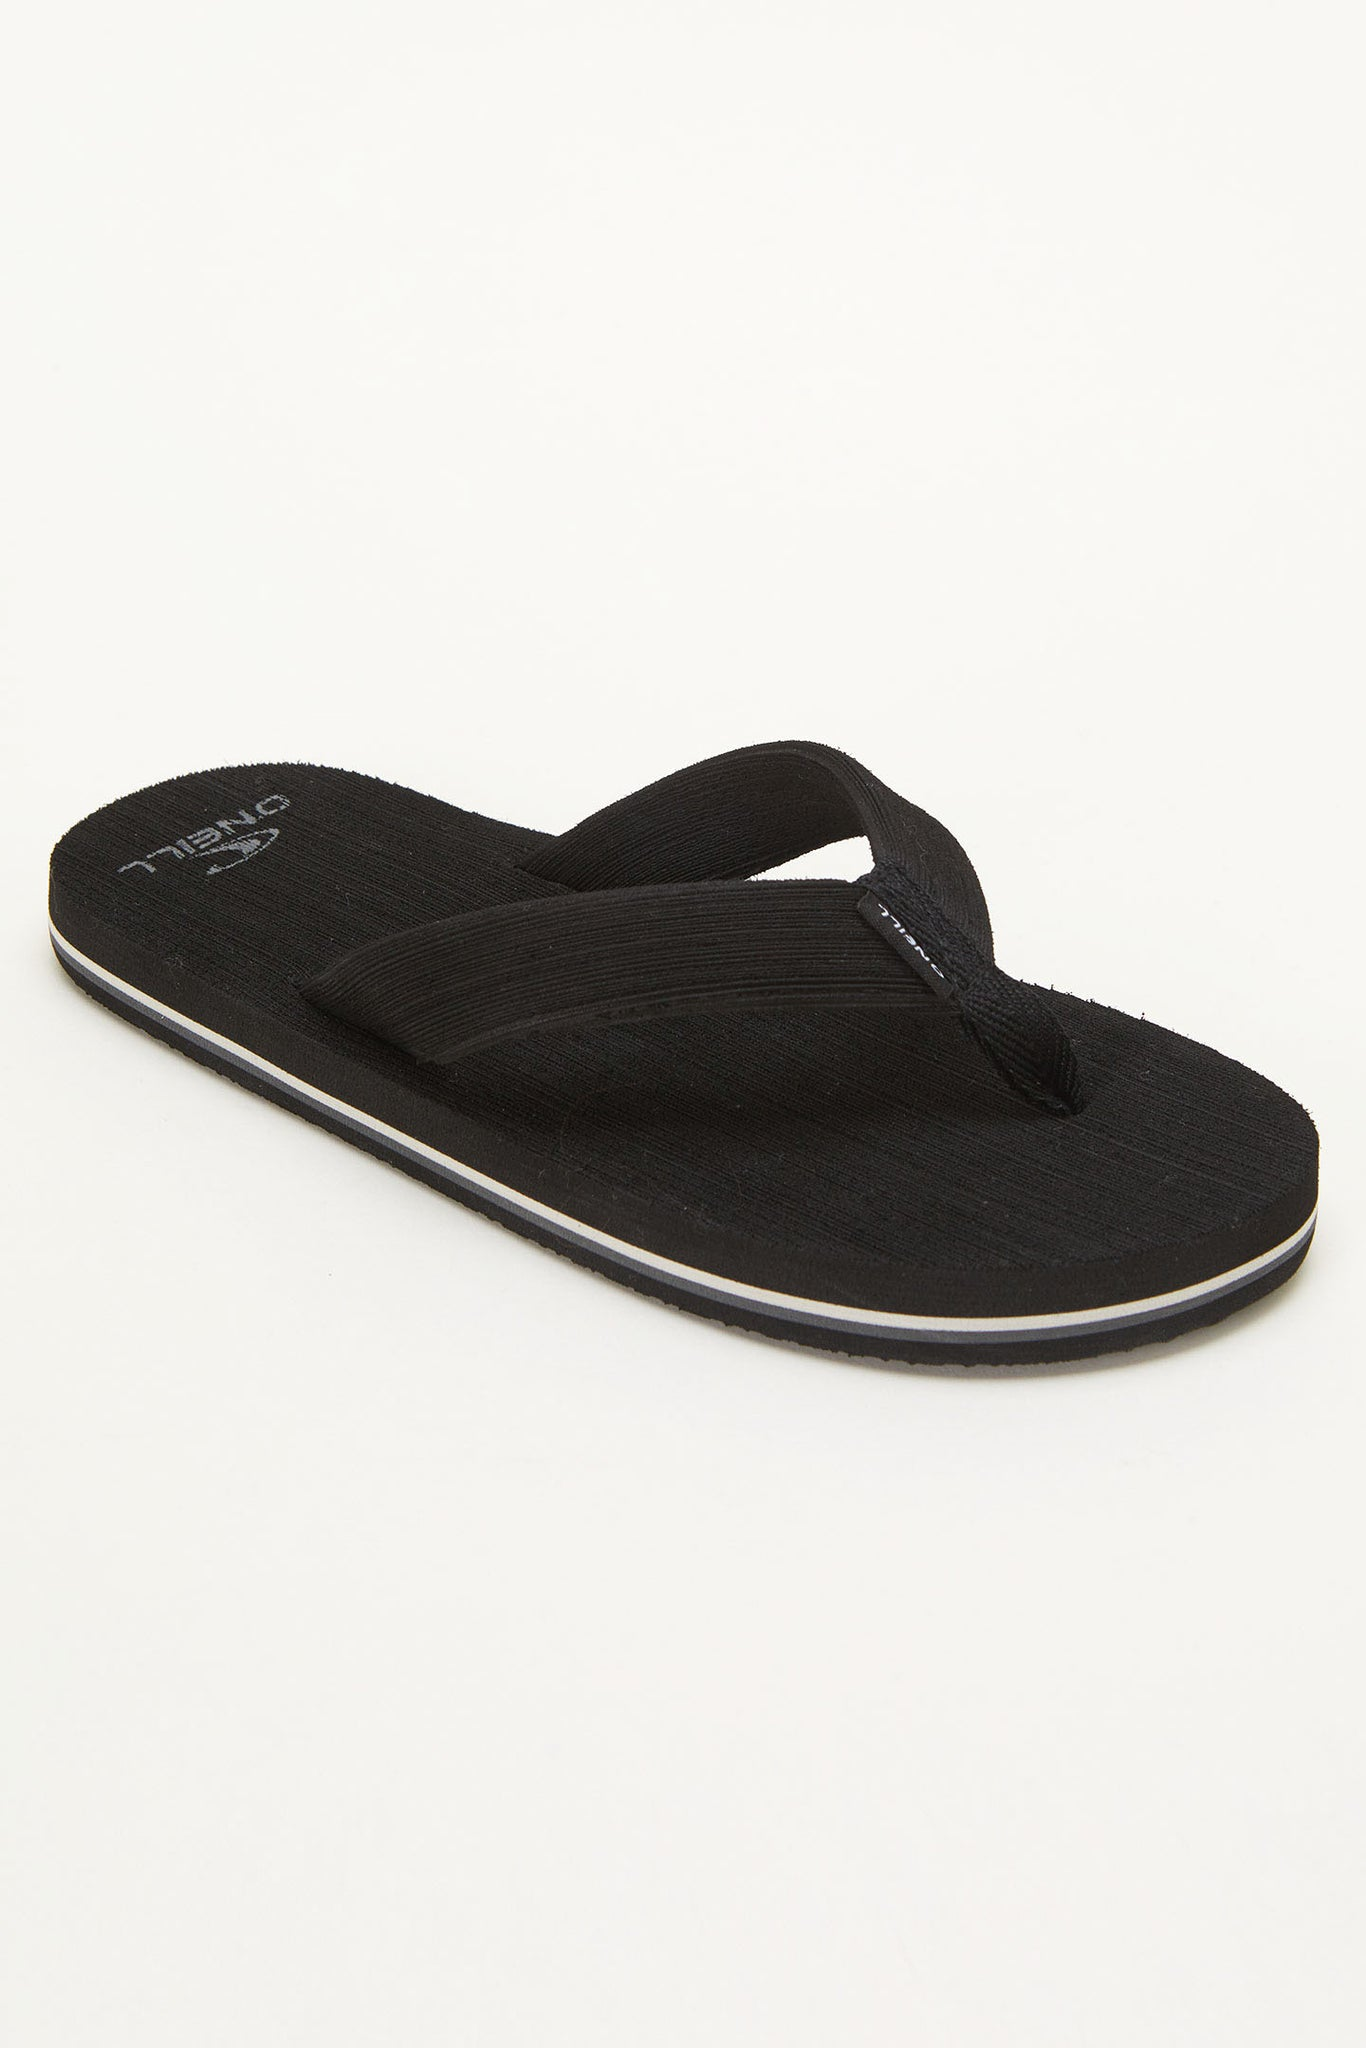 Boys Phluff Daddy Sandals - Black | O'Neill